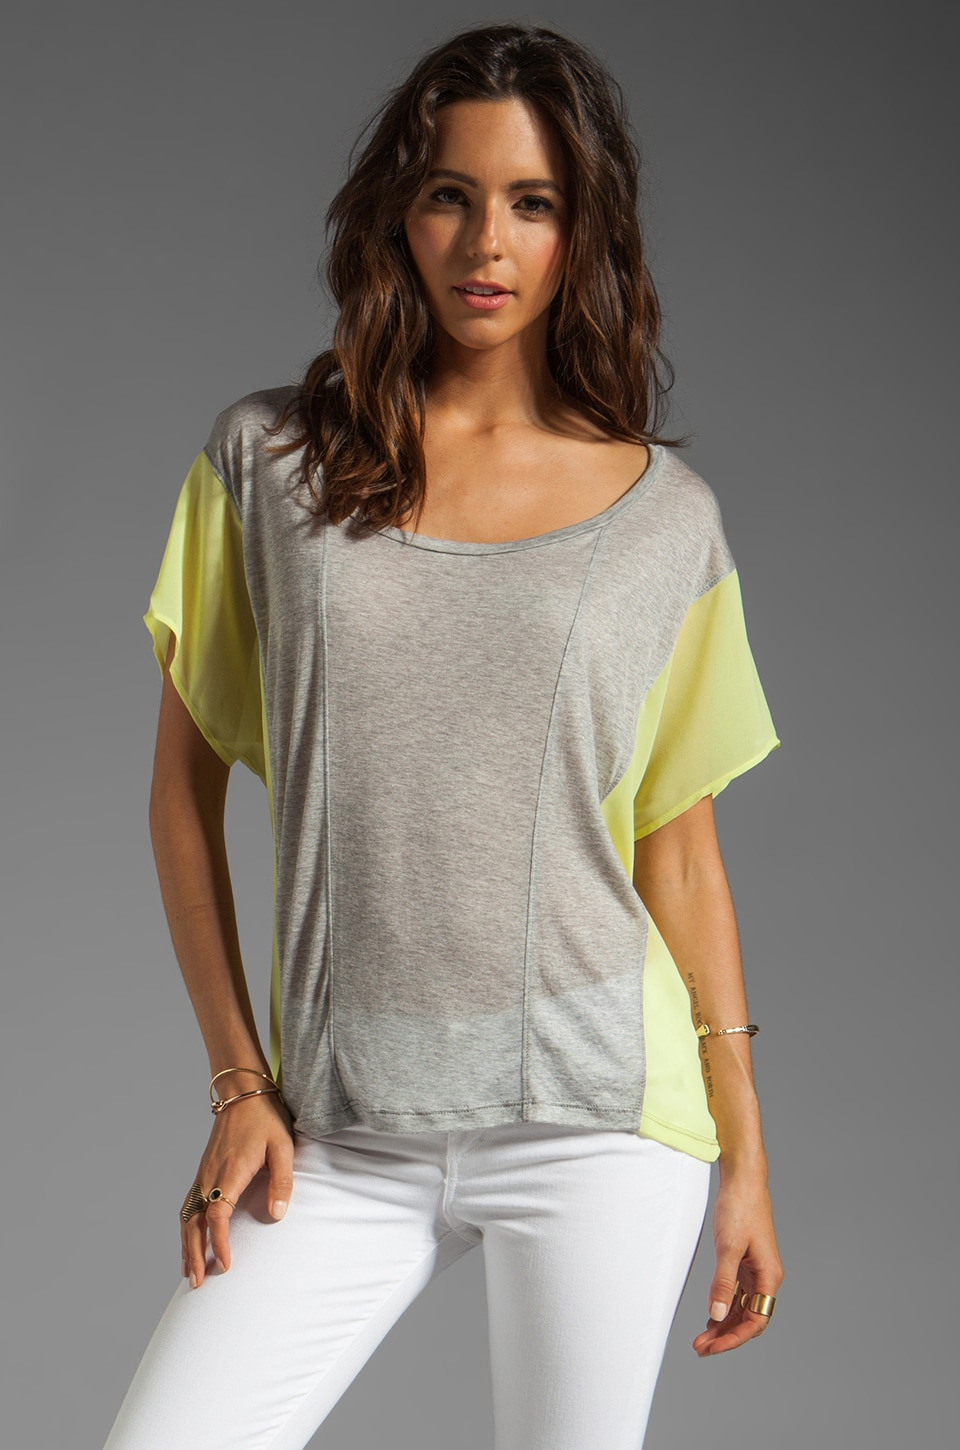 Velvet by Graham & Spencer Luxe Heather Nydia Short Sleeve Top in Heather Grey/Lime